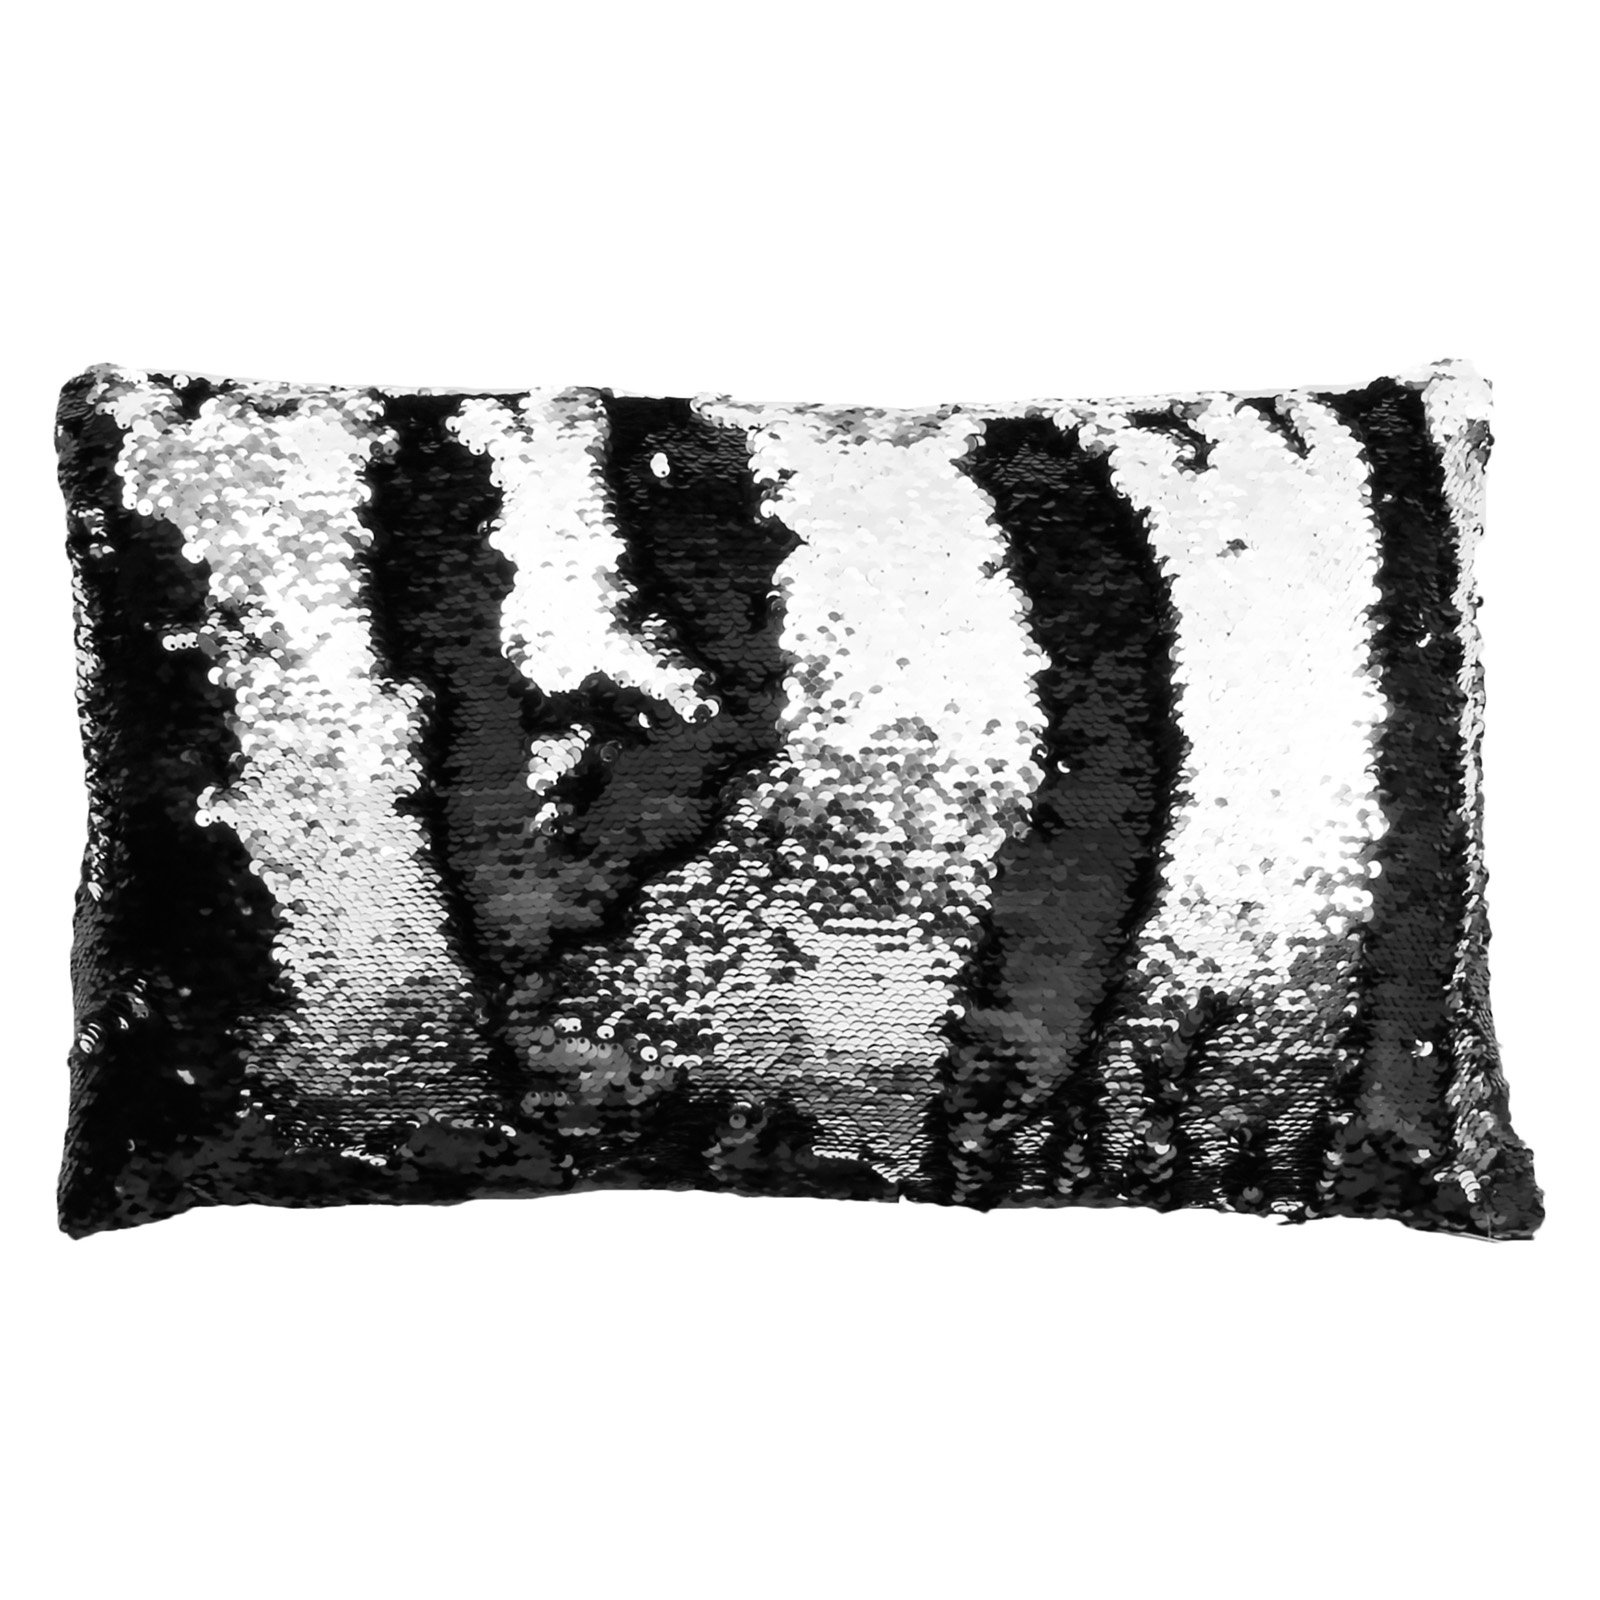 Thro LTD Melody Mermaid Shiny Metallic Rectangle Decorative Pillow